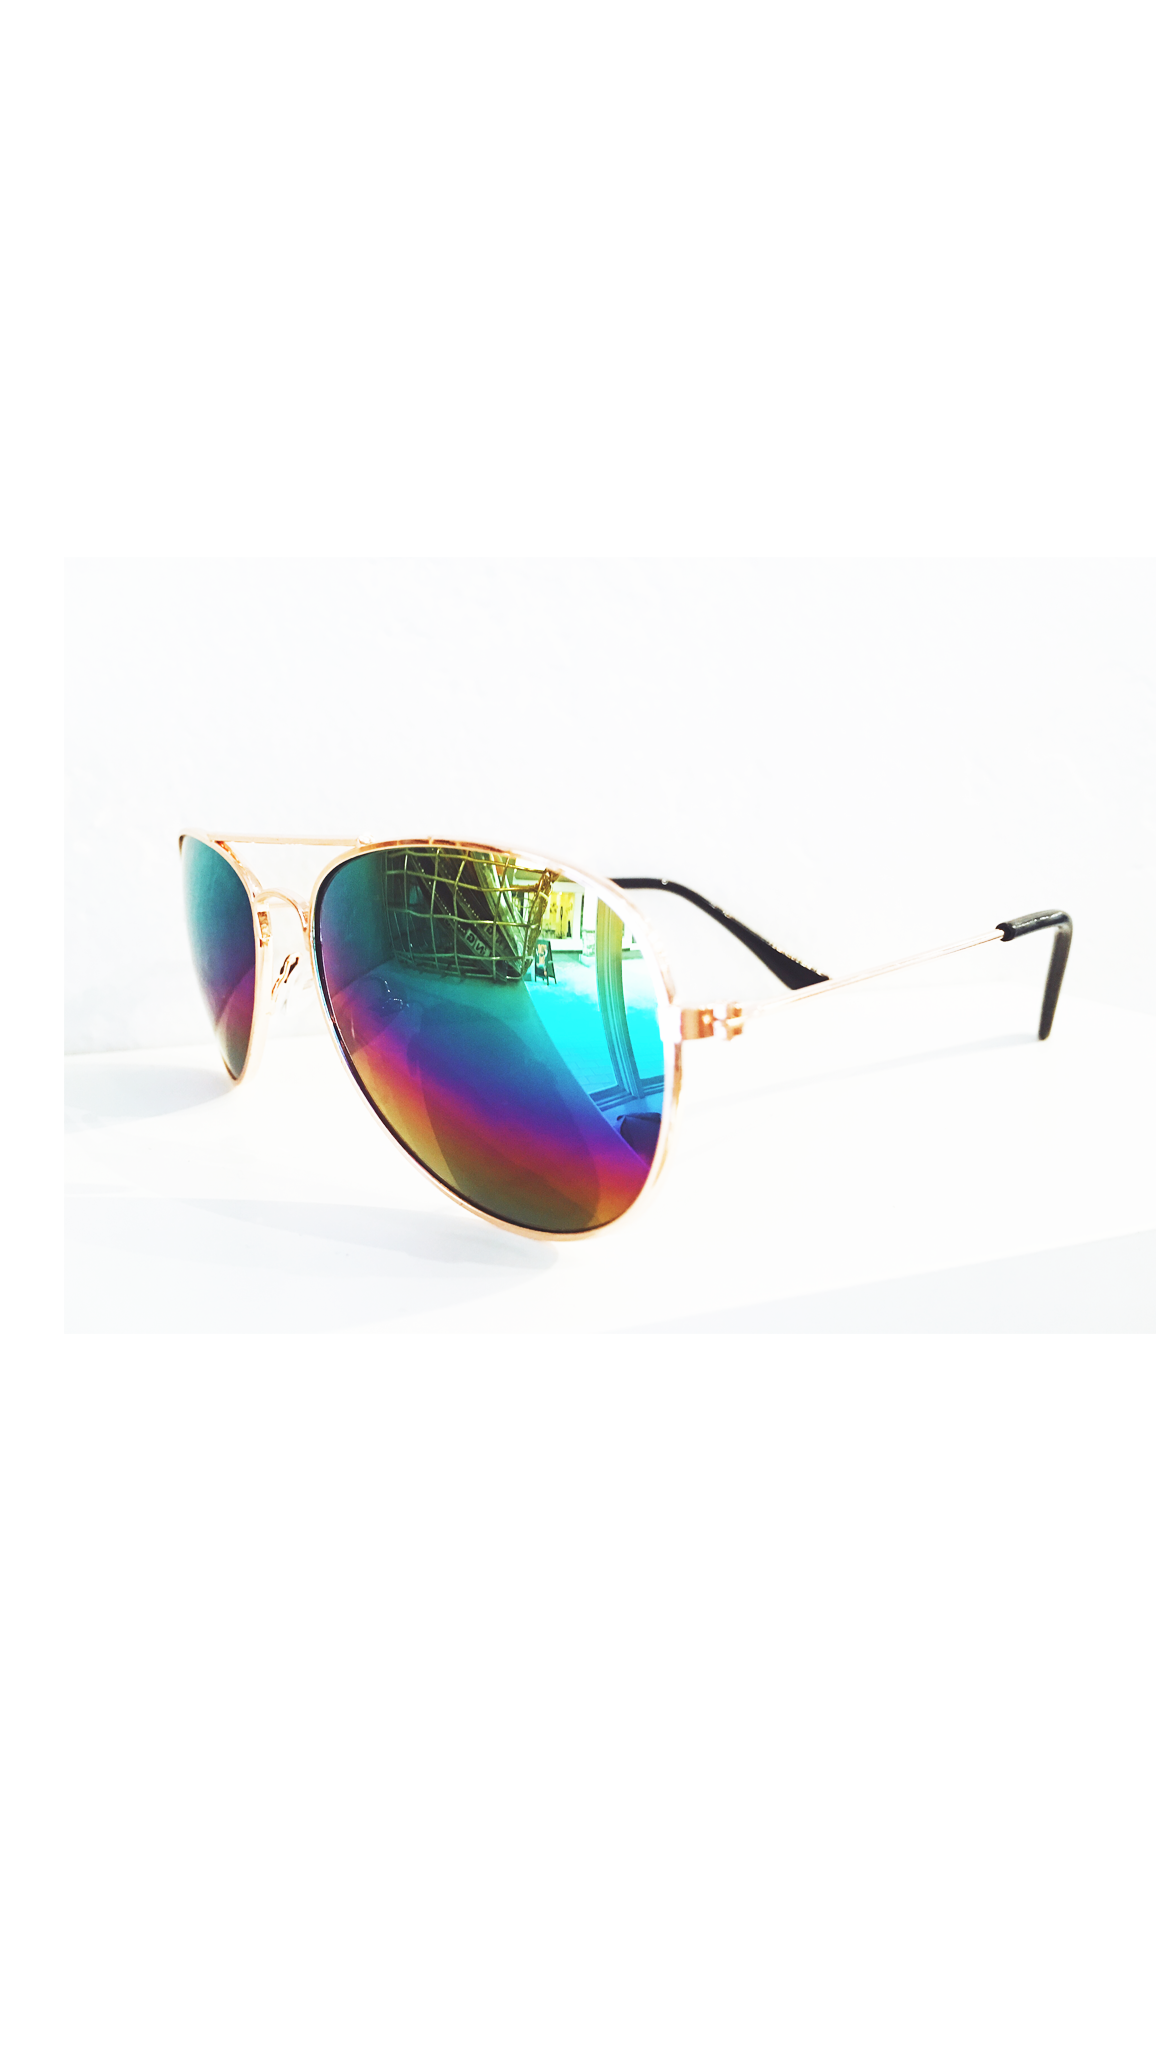 The Merrick Aviators - More Colors